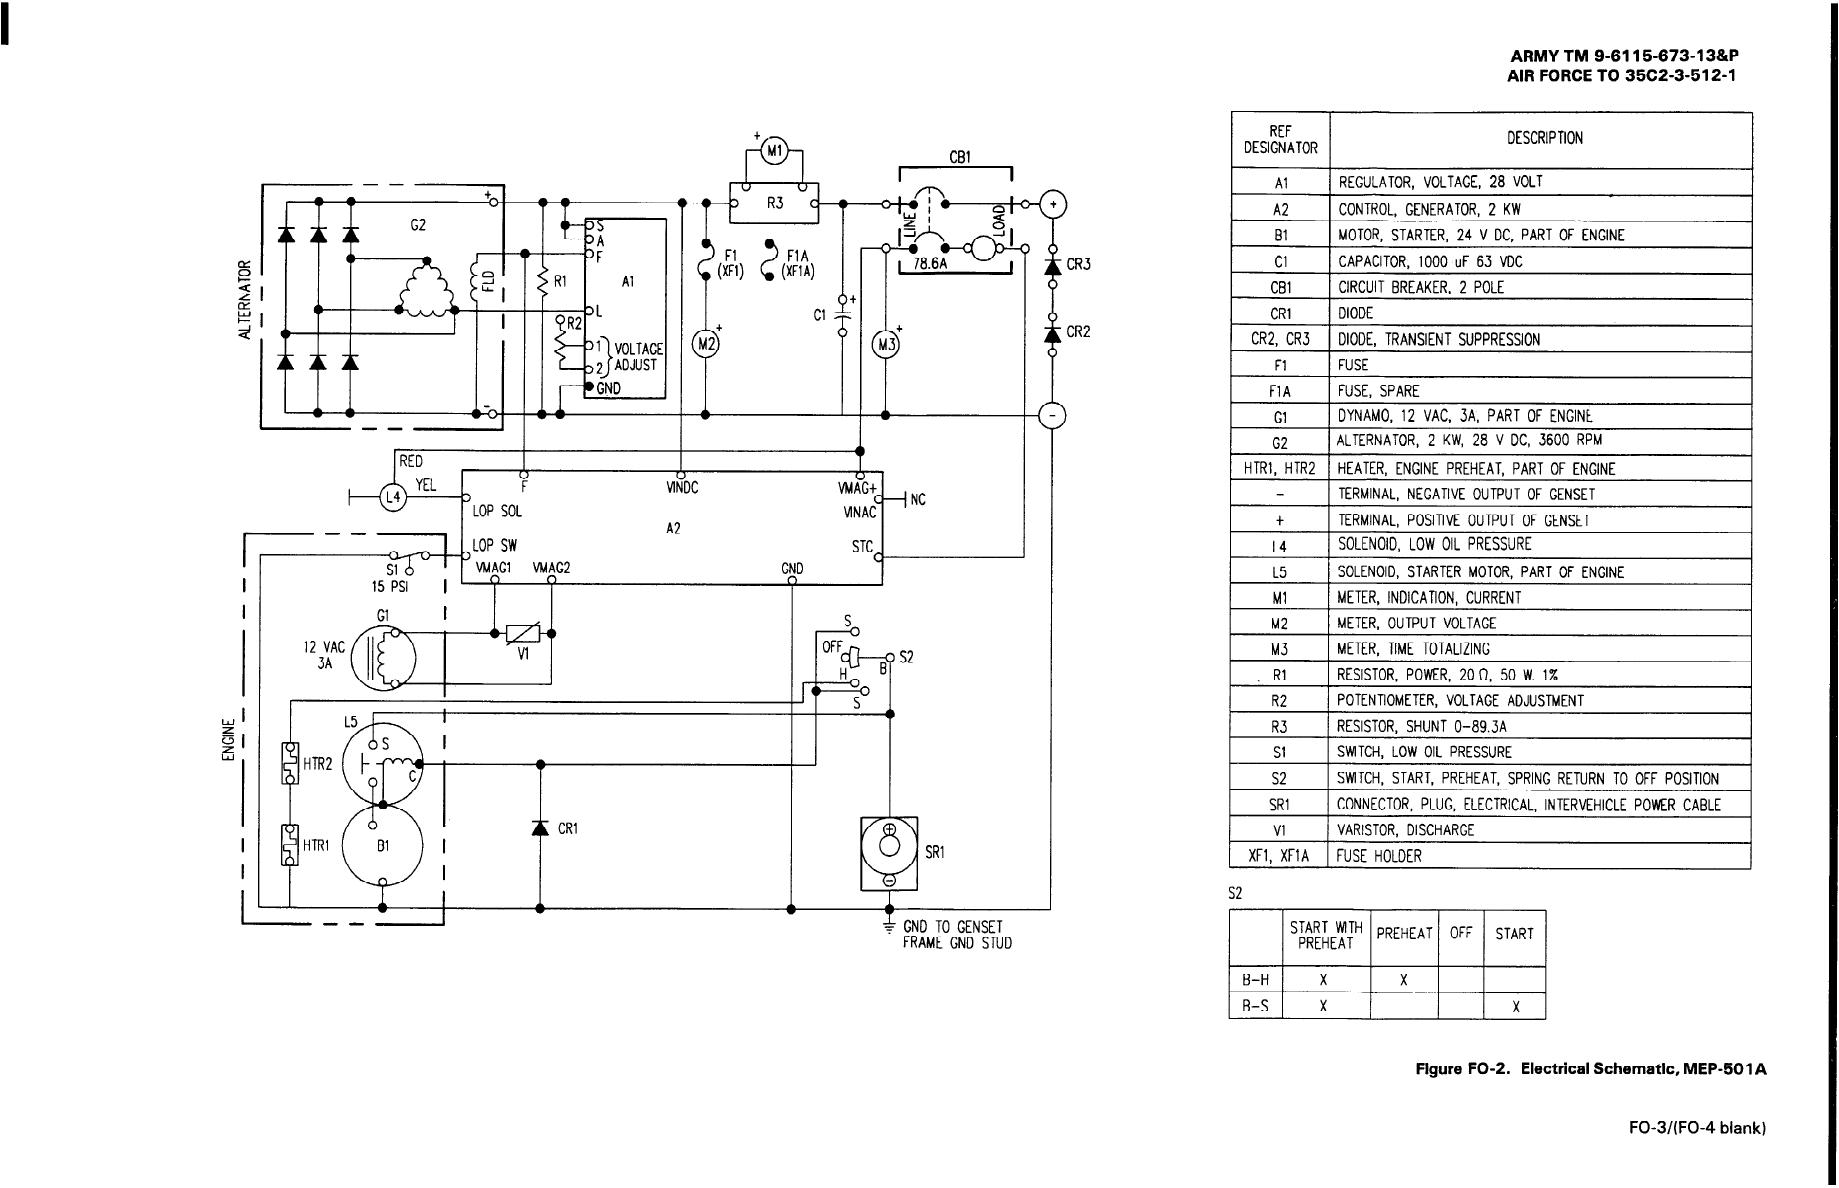 Figure Fo 2 Electrical Schematic Mep 501a